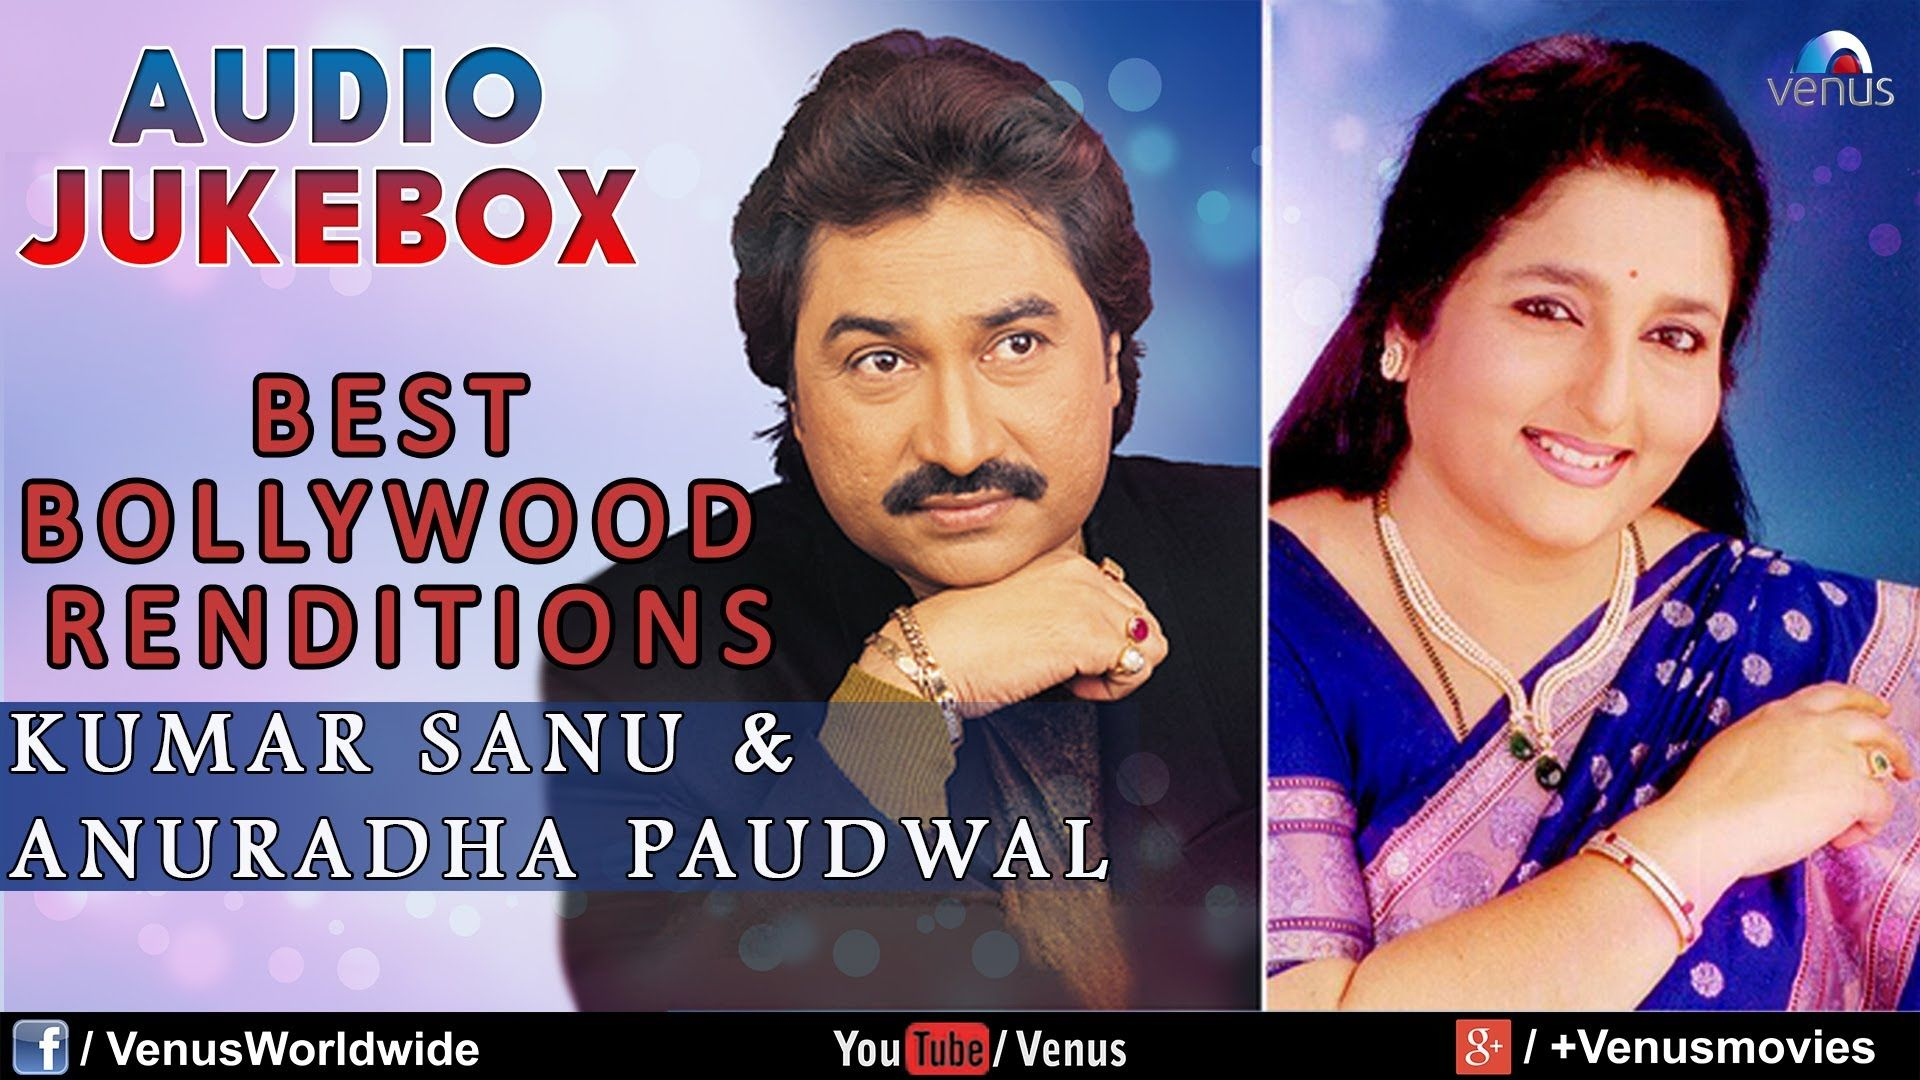 Kumar Sanu Anuradha Paudwal Best Hindi Songs Audio Jukeboxomg Kumar Sanu Hindi Old Songs Songs